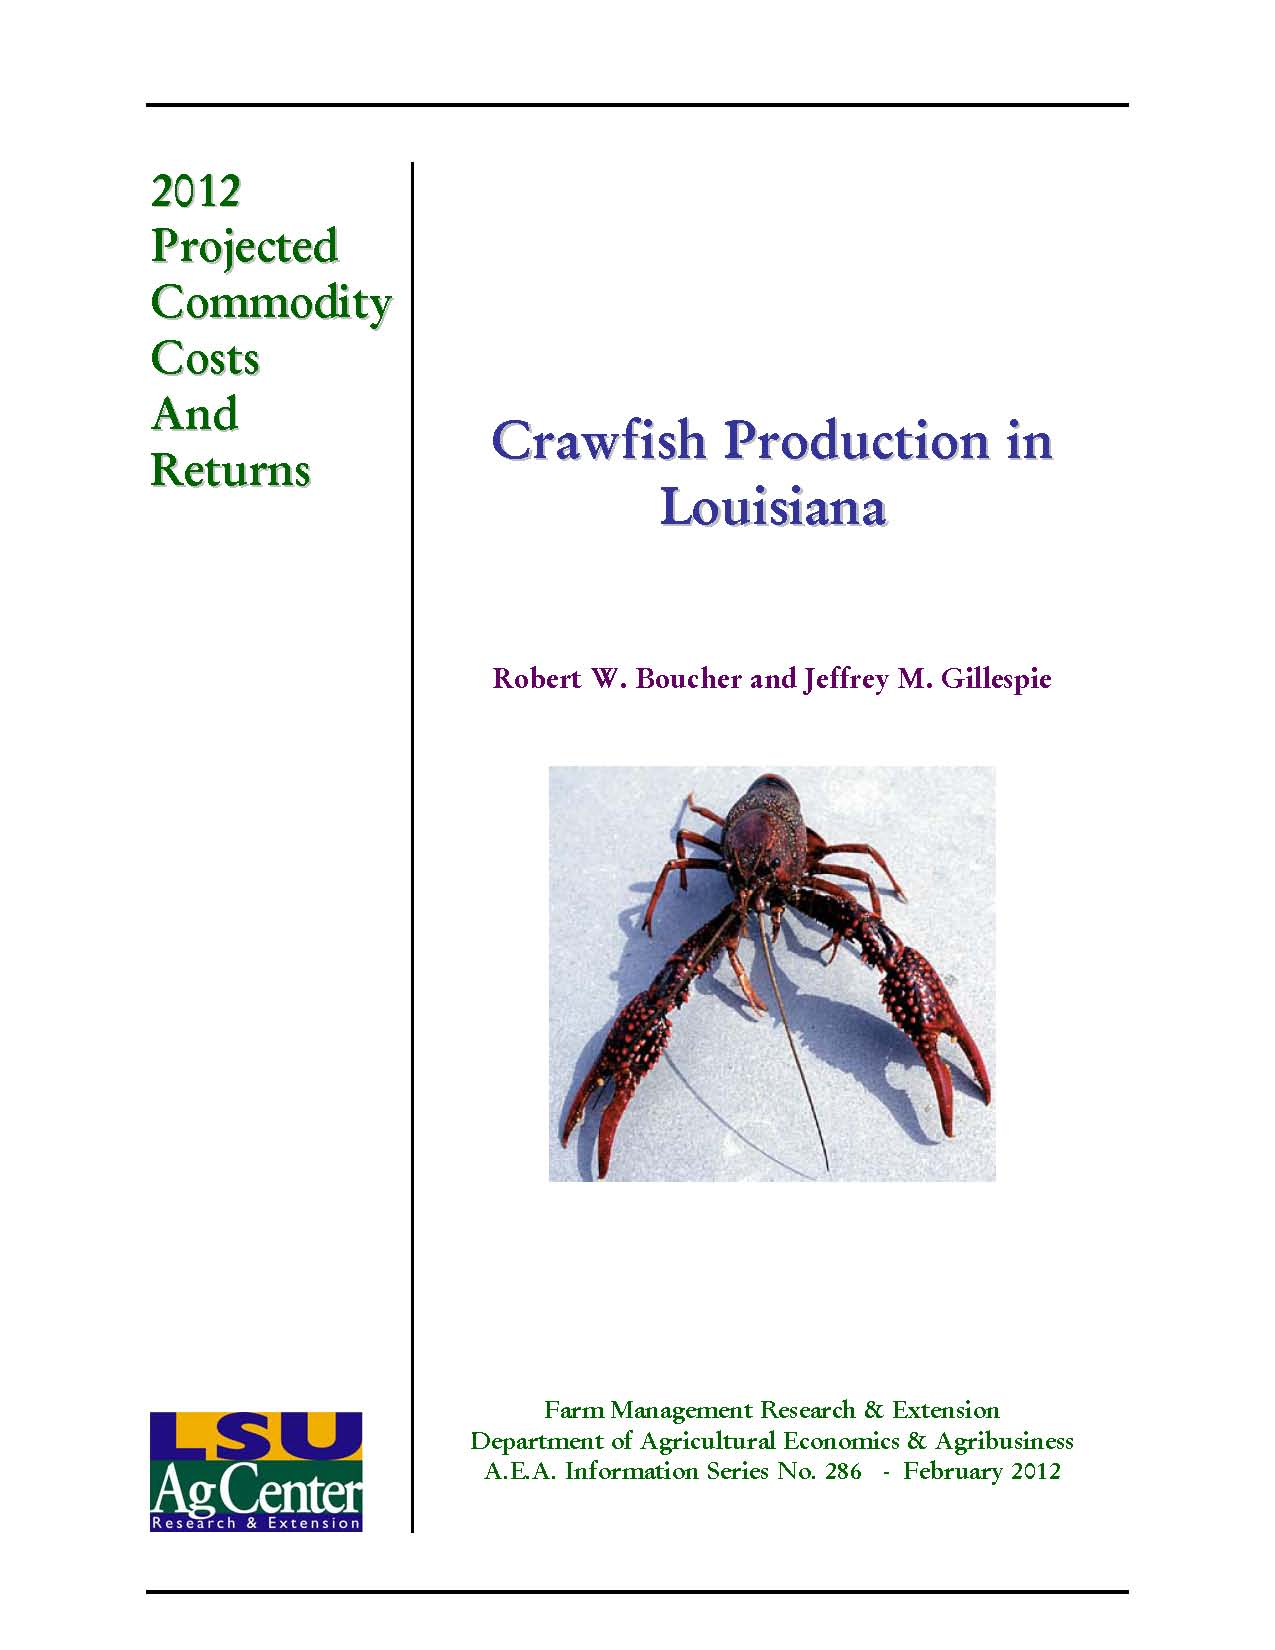 Projected Costs and Returns for Crawfish Production in Louisiana 2012